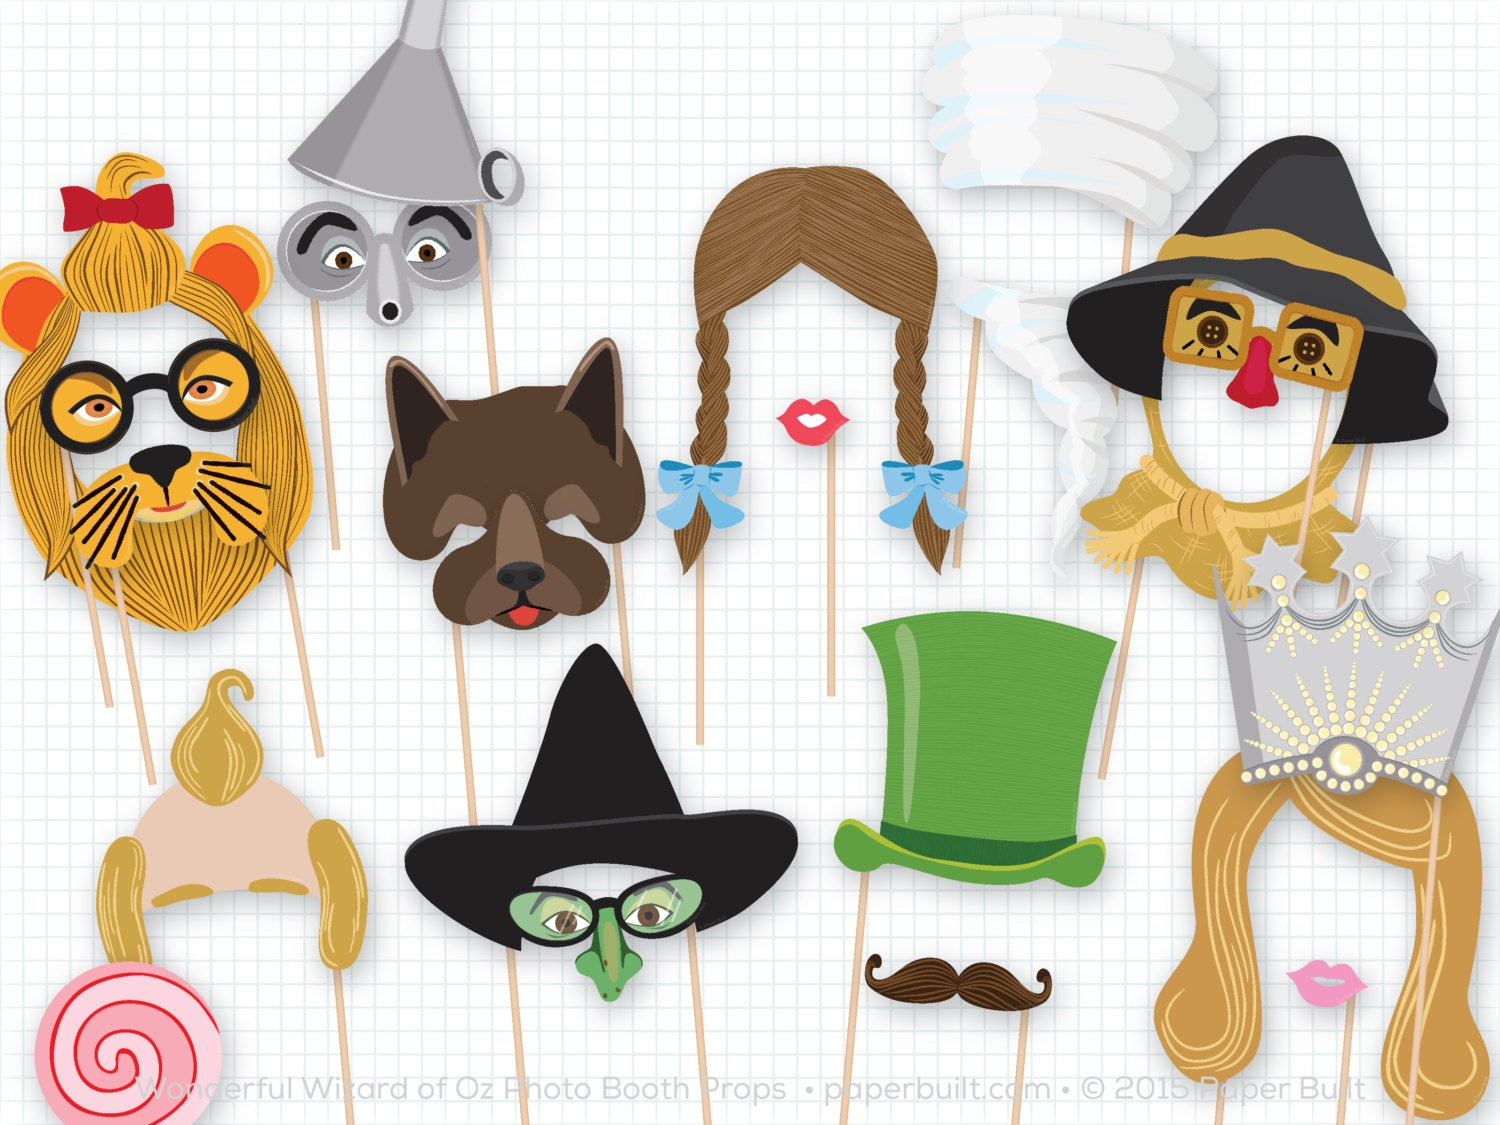 Wizard Of Oz Party Decorations Wizard Of Oz Party Photo Booth Props Wonderful Wizard Of Oz